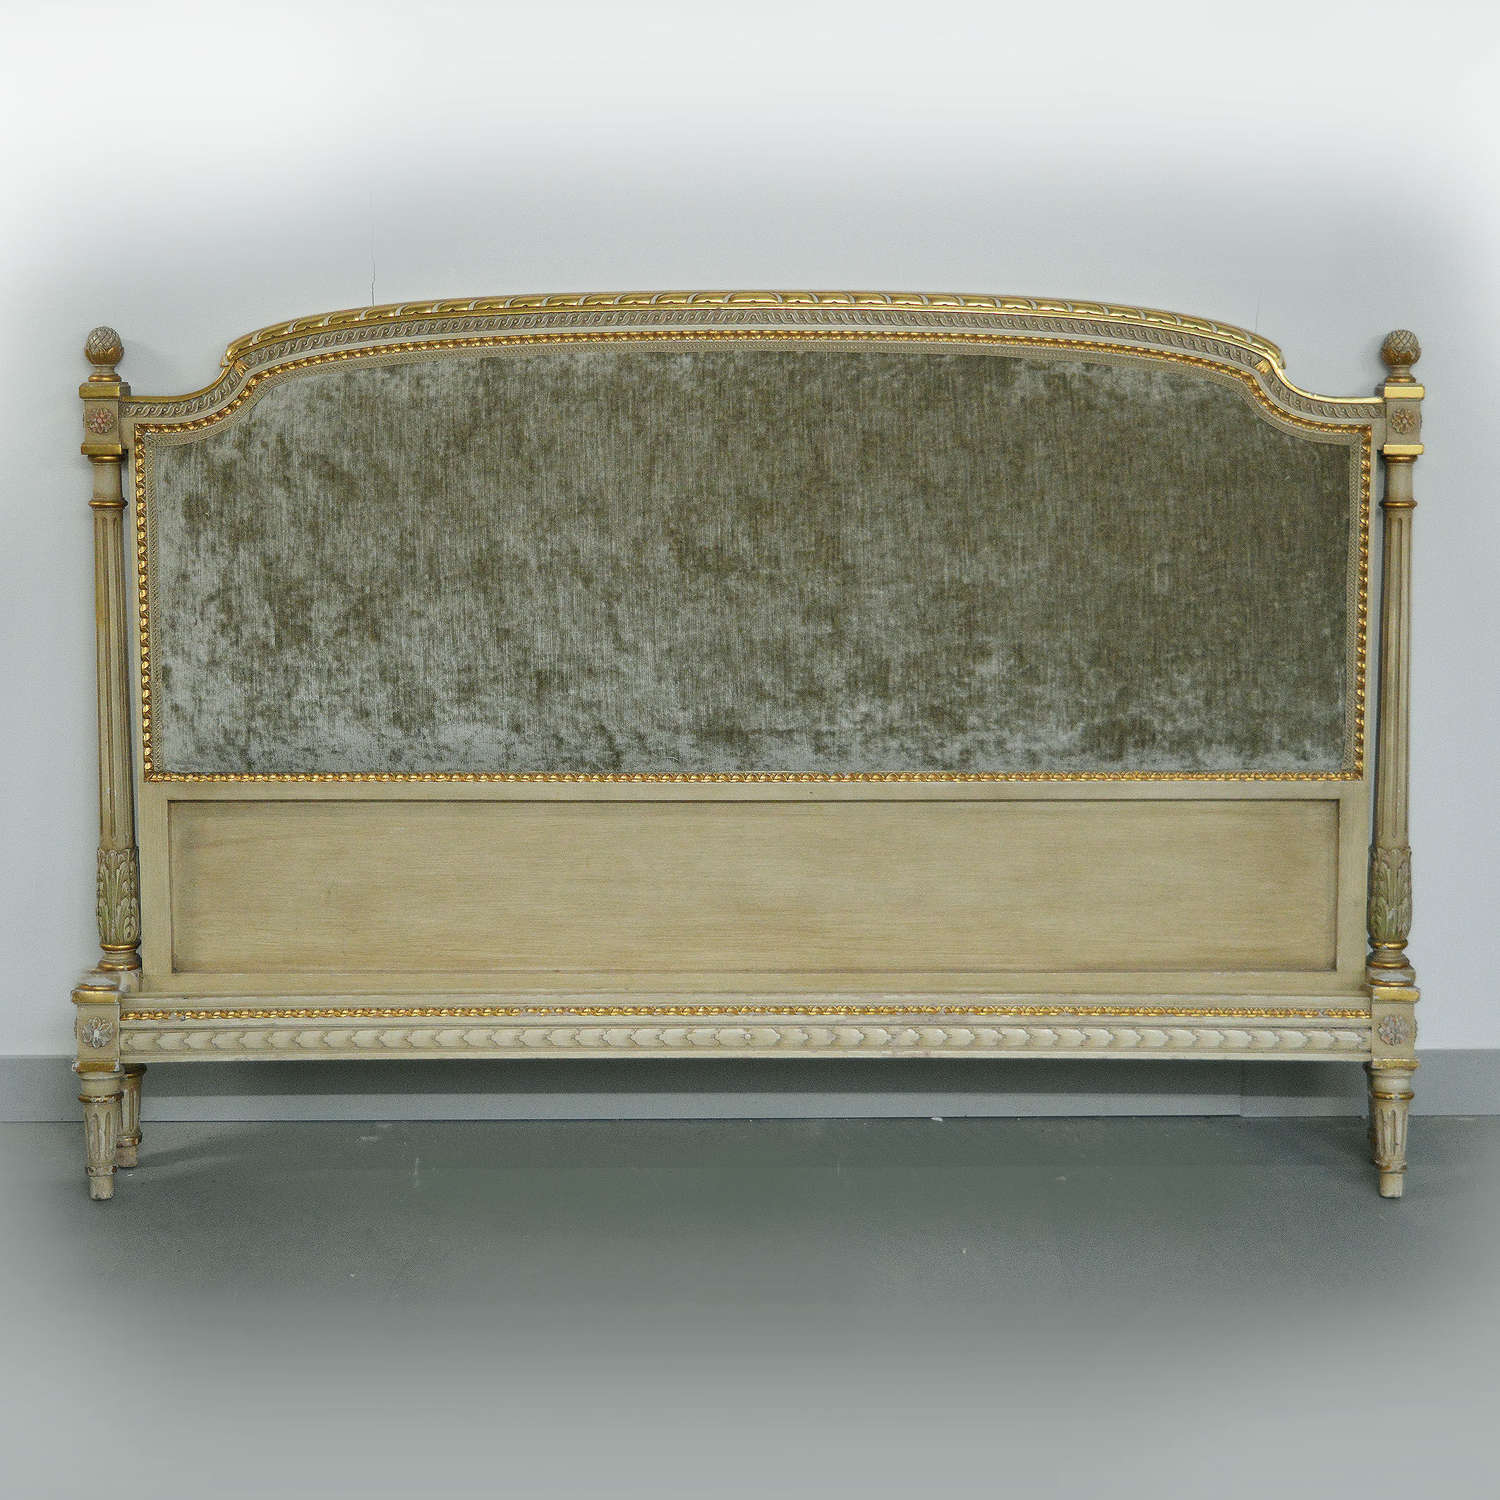 Super-king size Louis XVI style upholstered bedstead